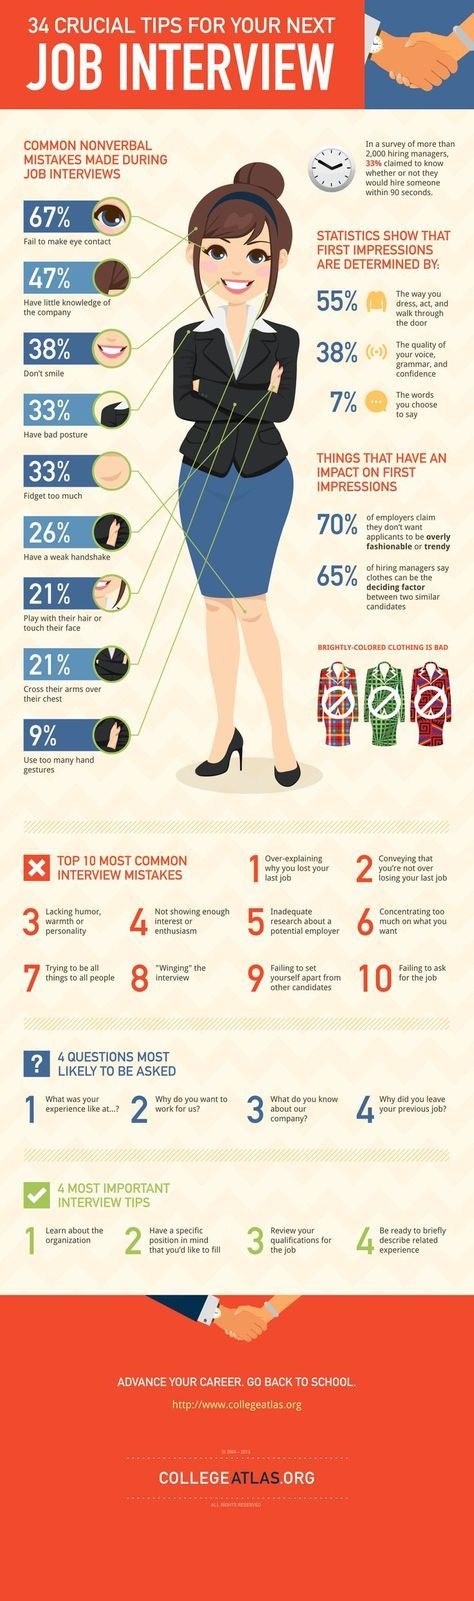 34 Crucial Tips For Your Next Job Interview #Infographic Career, Career  Advice, Career Tips #career